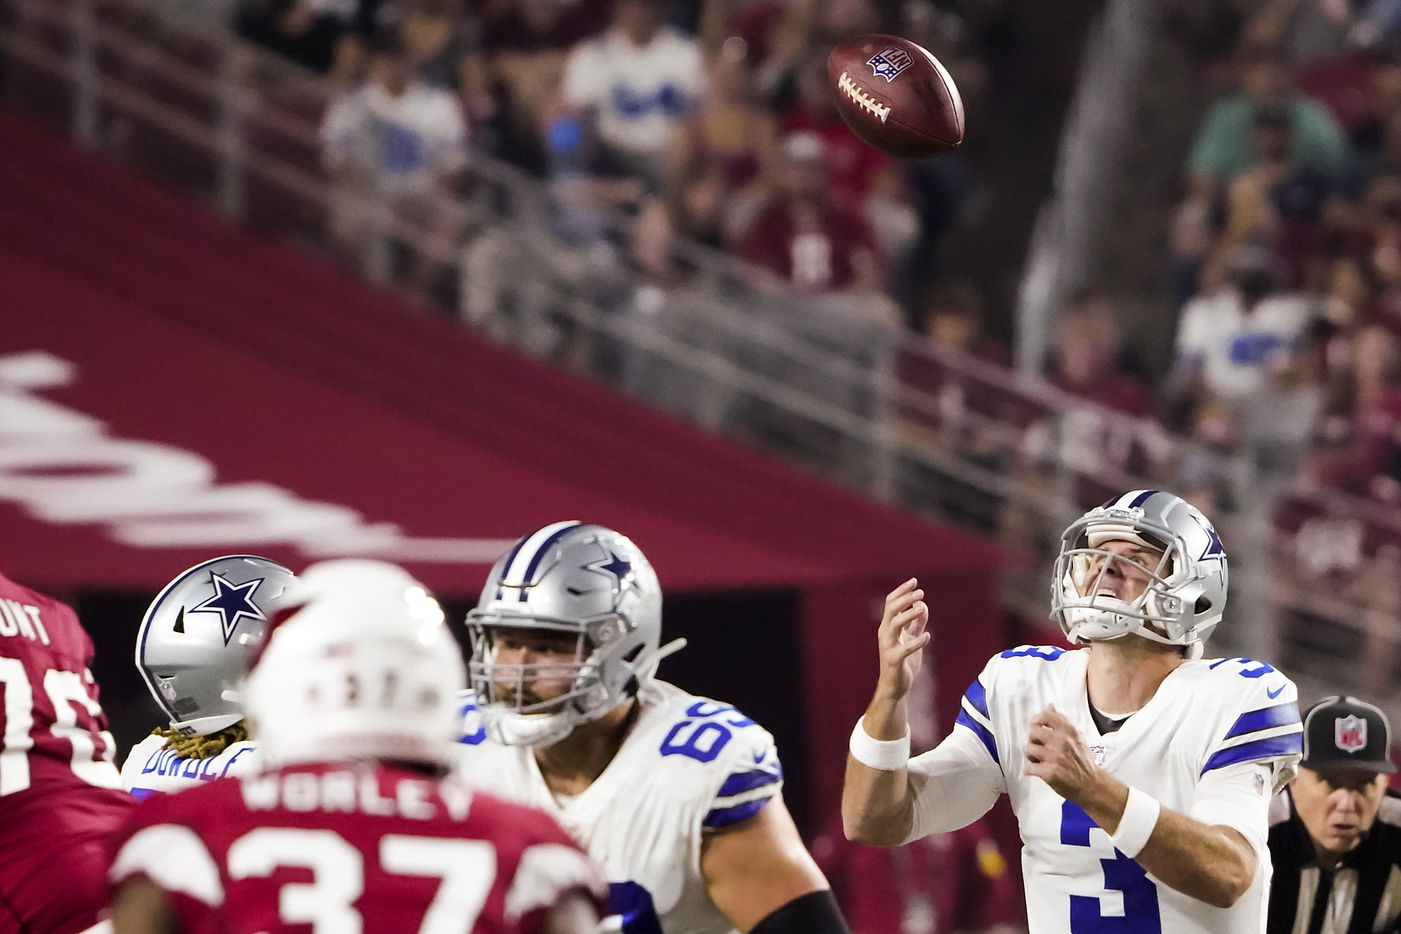 Dallas Cowboys quarterback Garrett Gilbert (3) reaches for a high snap during the first quarter of an NFL football game at State Farm Stadium on Friday, Aug. 13, 2021, in Glendale, Ariz.